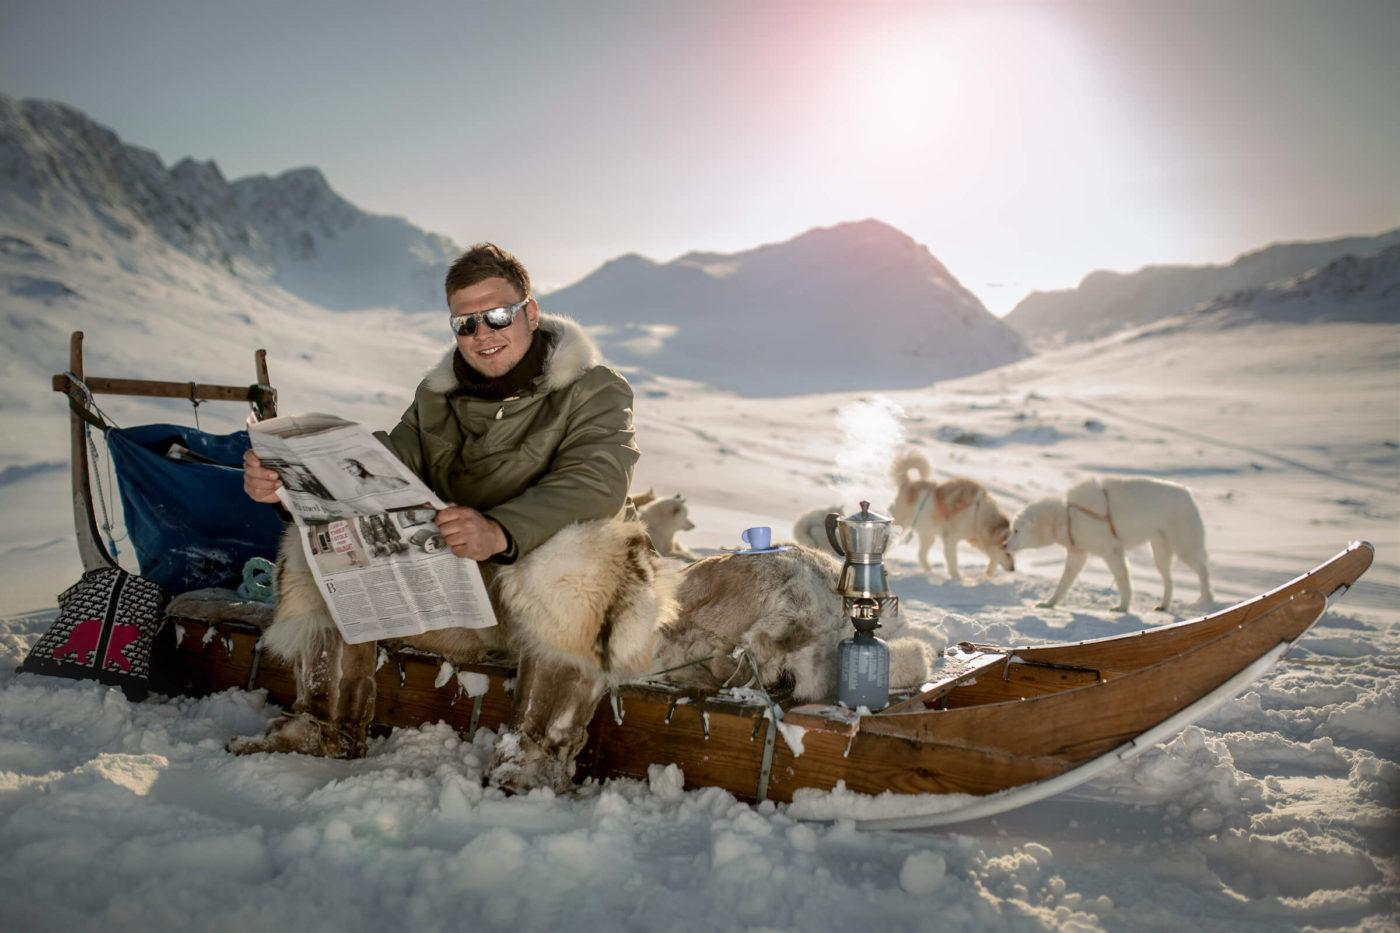 Dog sled driver from Sisimiut brewing espresso and reading a newspaper